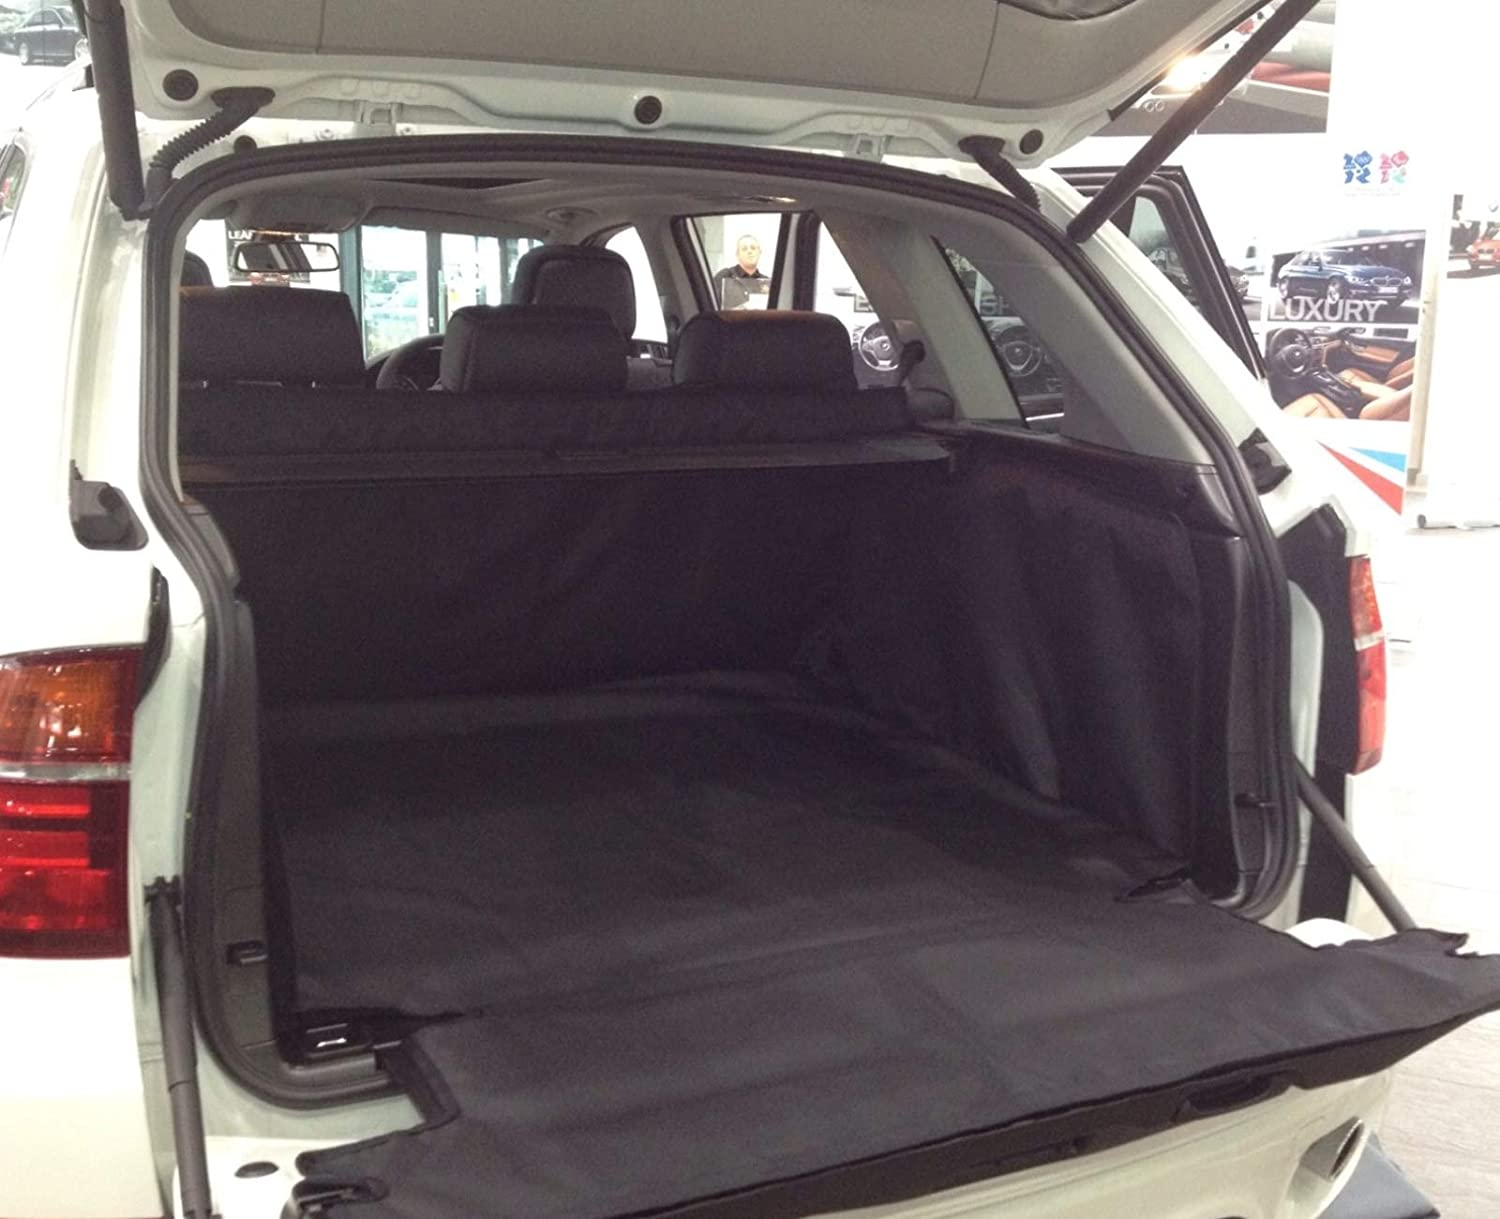 Stayclean SC0076 Waterproof Car Boot Liner to fit Honda CRV 2012-2018